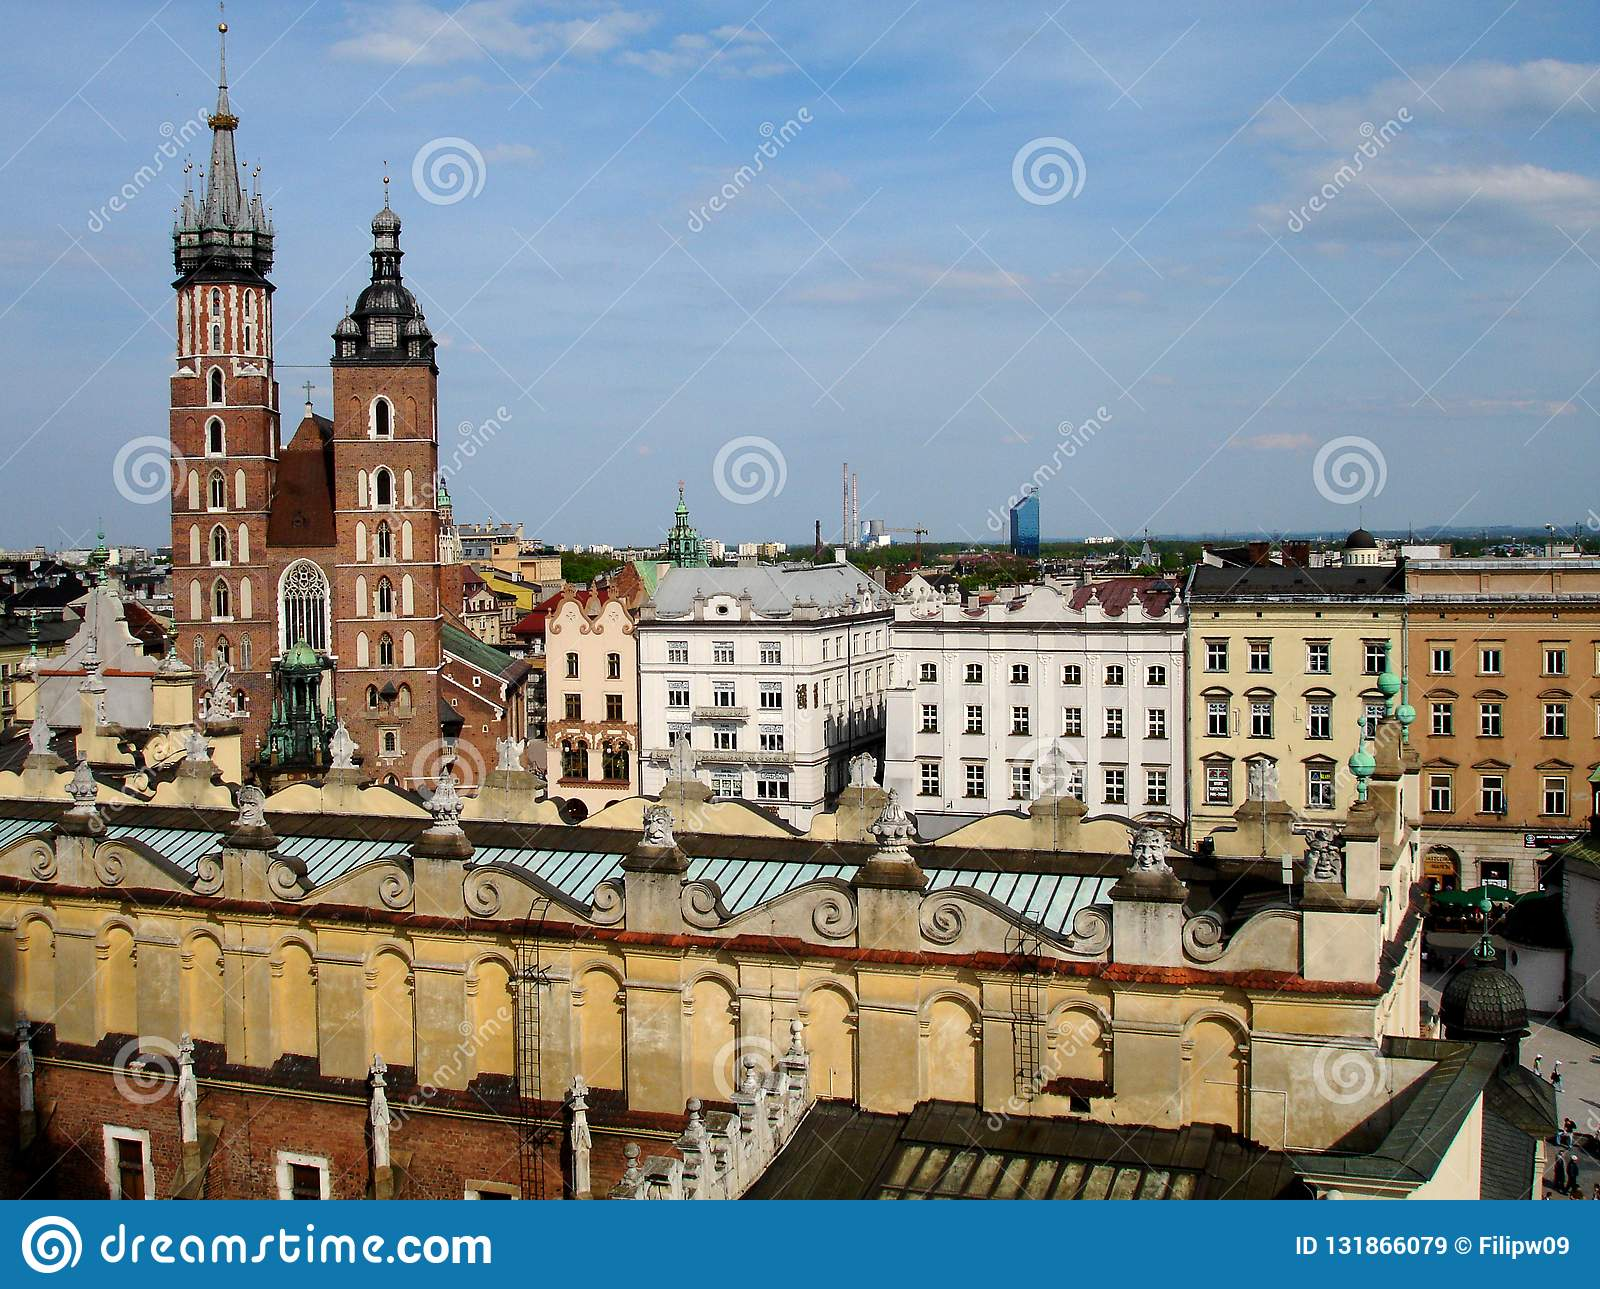 Old City of Krakow Poland